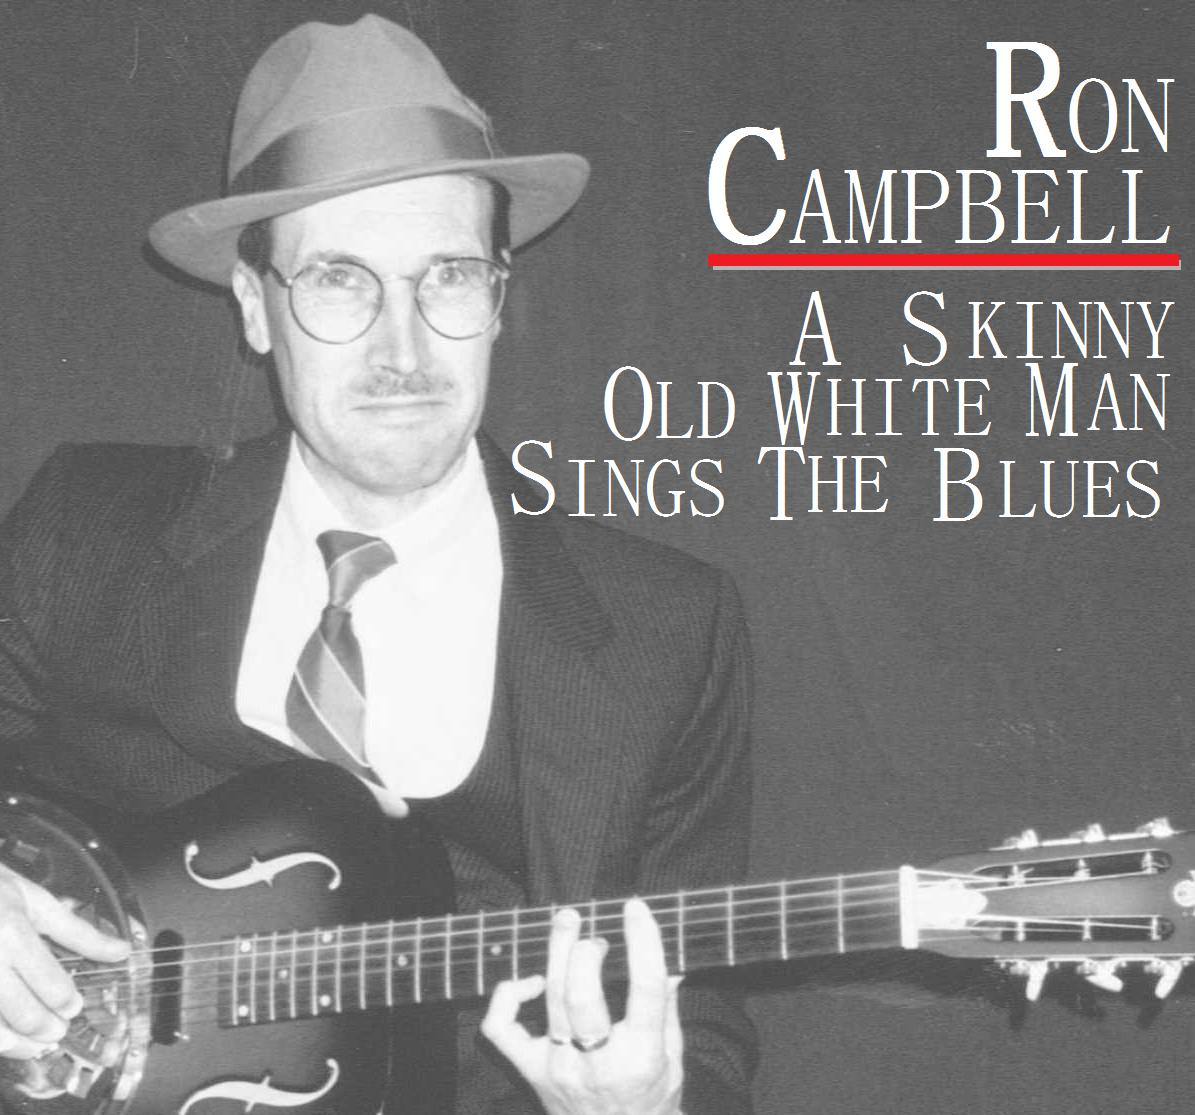 A Skinny Old White Man Sings The Blues - Click Here to Buy